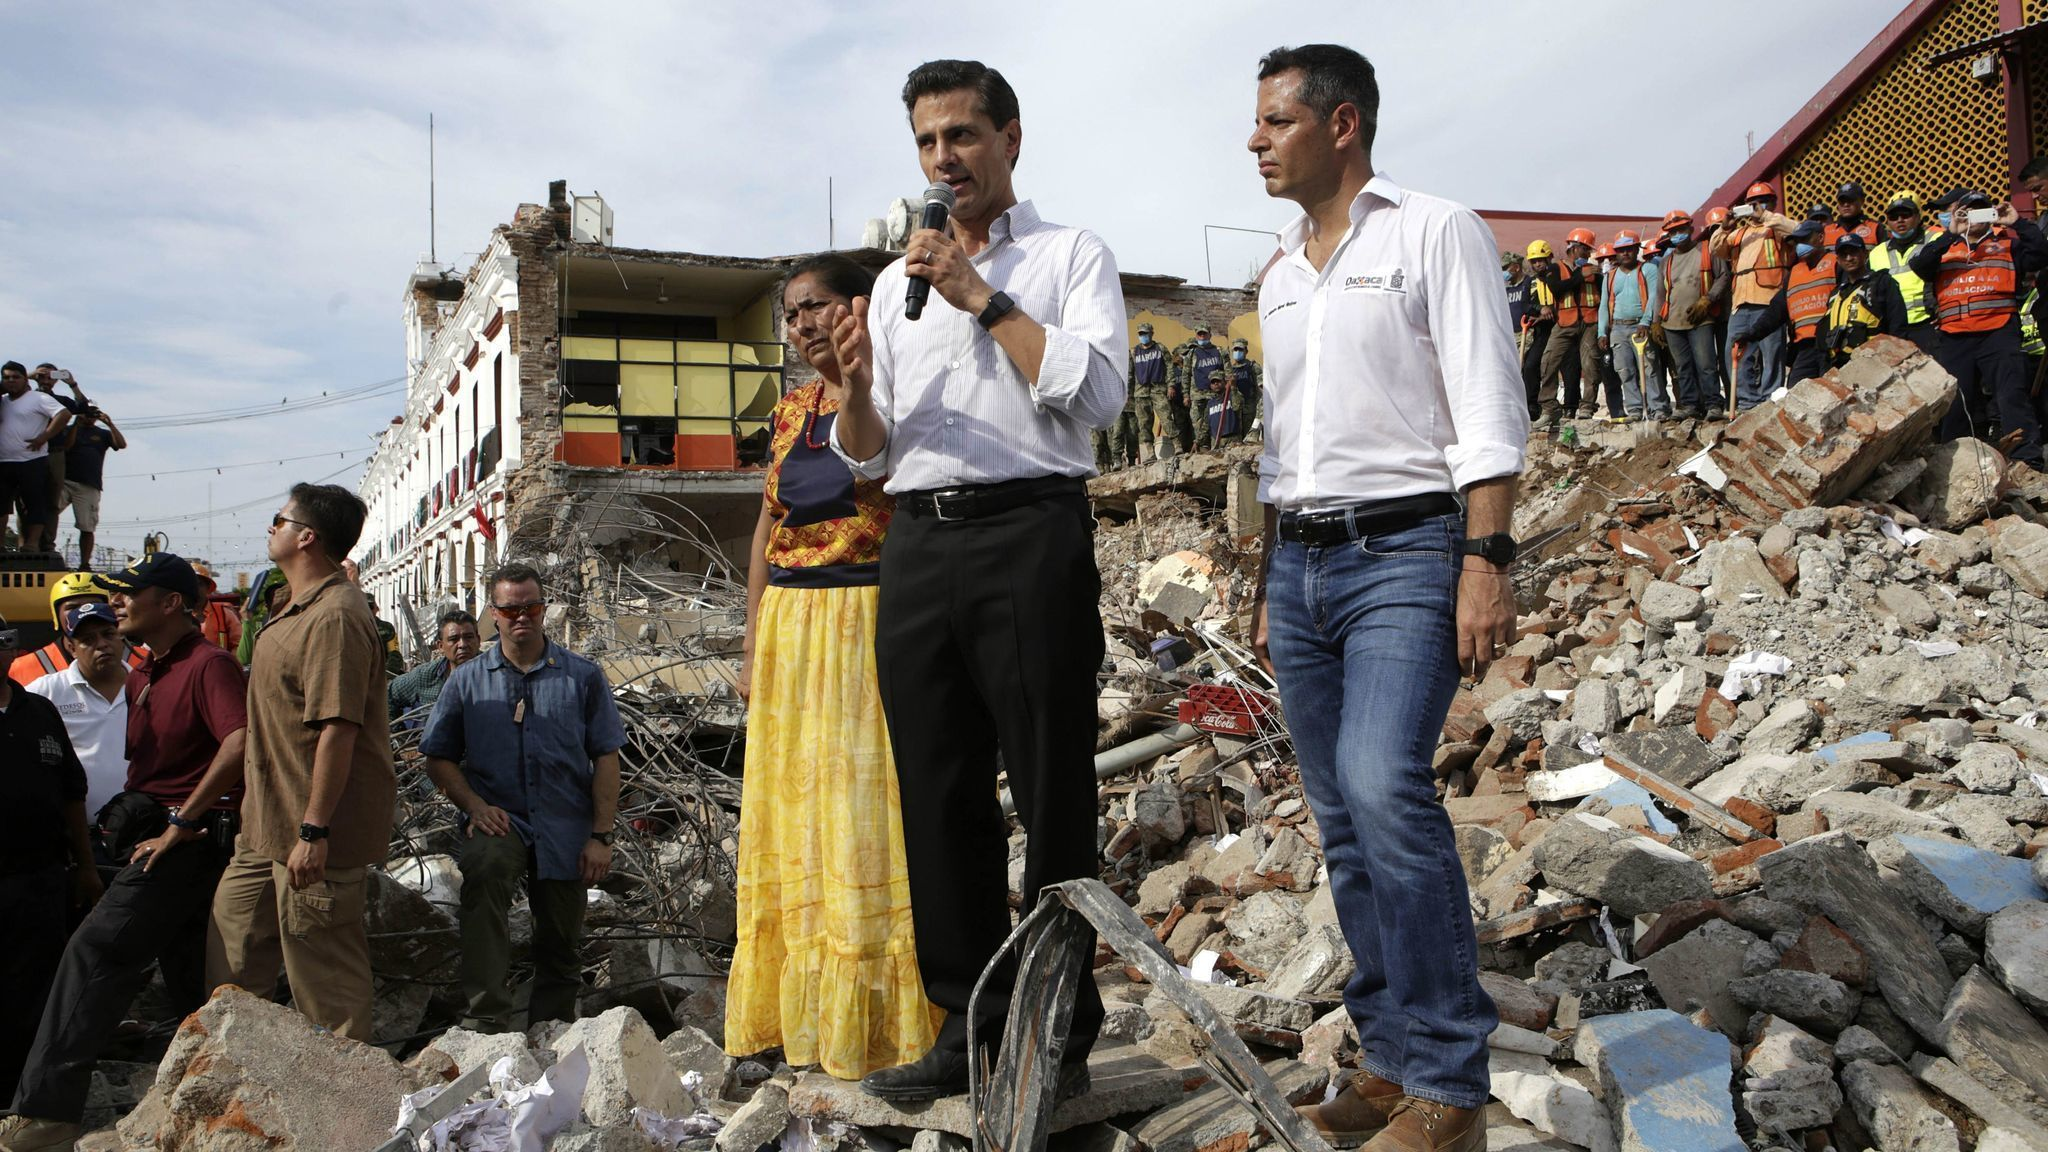 After an earthquake and a hurricane — and Trump's failure to send condolences — Mexico rescinds offer of aid to U.S.